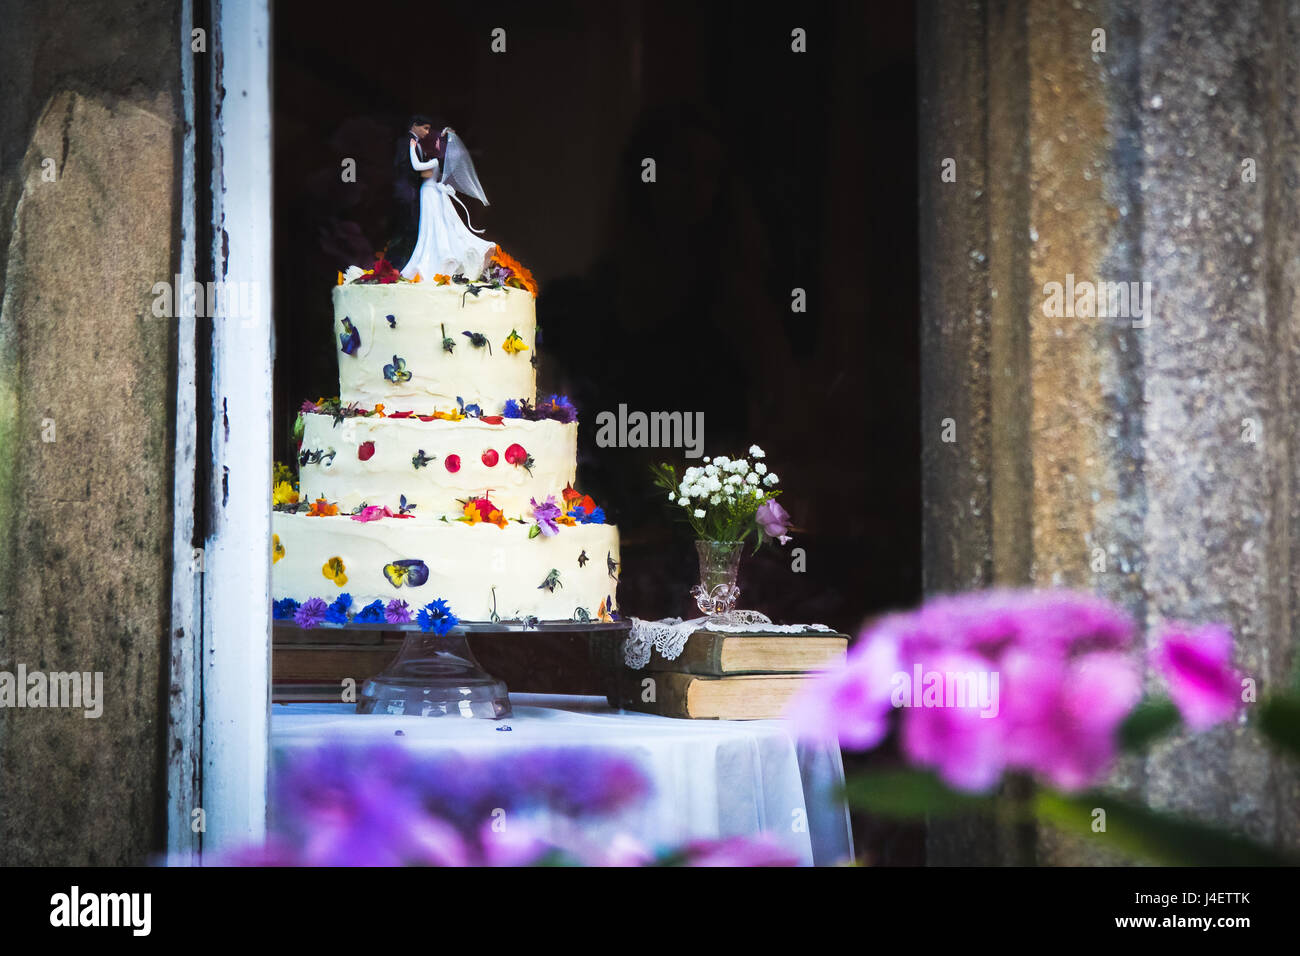 Pretty wedding cake with white icing and flowers topped with figurines of the bride and groom. Pink and purple flowers - Stock Image